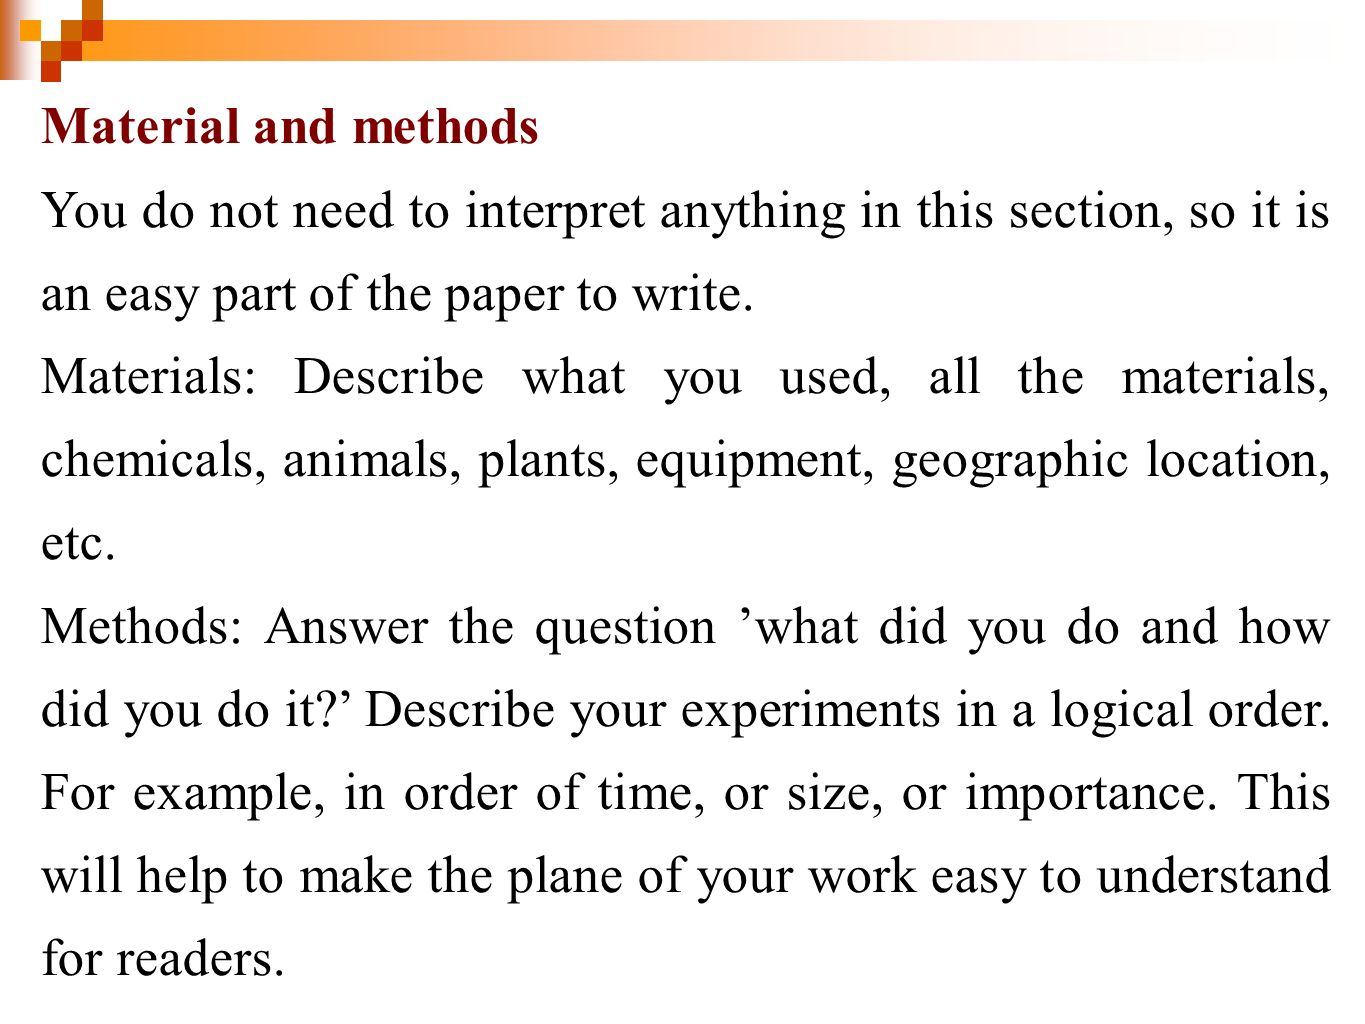 012 Example Of Materials And Methods Section Research Paper Wonderful A Full